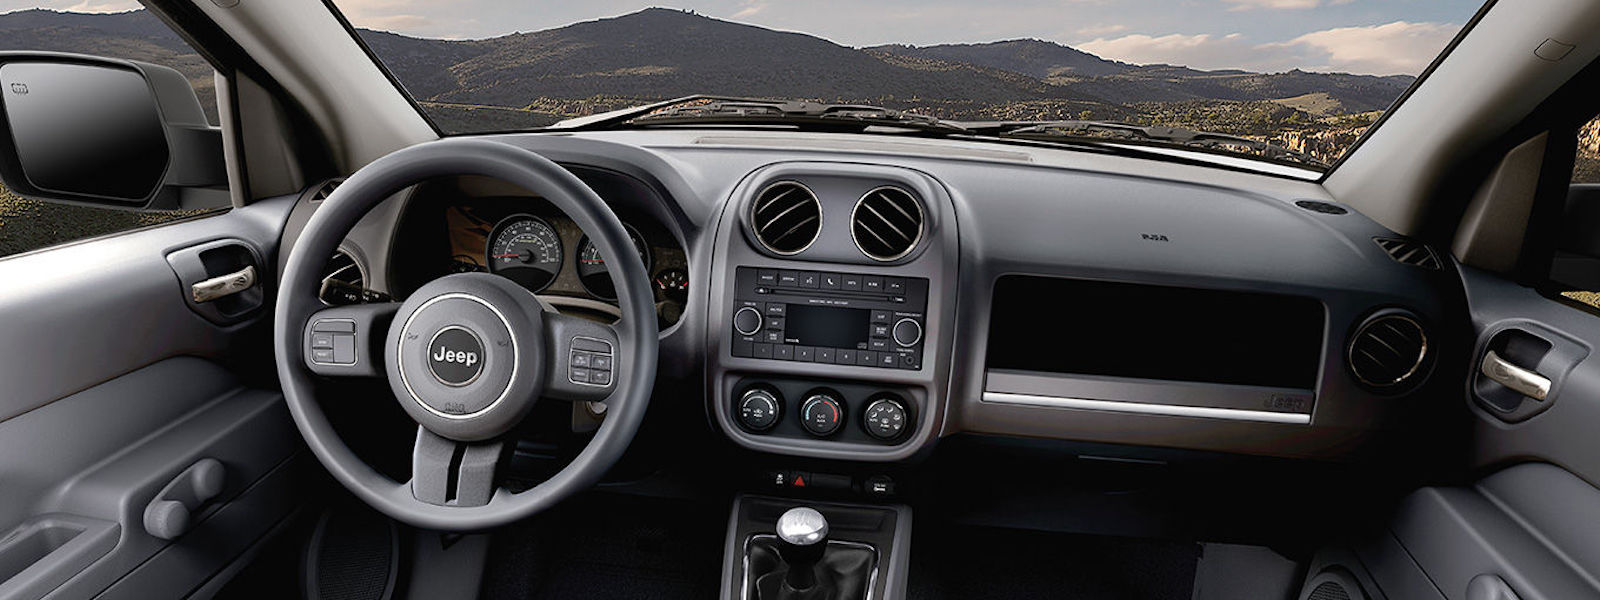 2016 Jeep Patriot Interior design with rolling mountain view